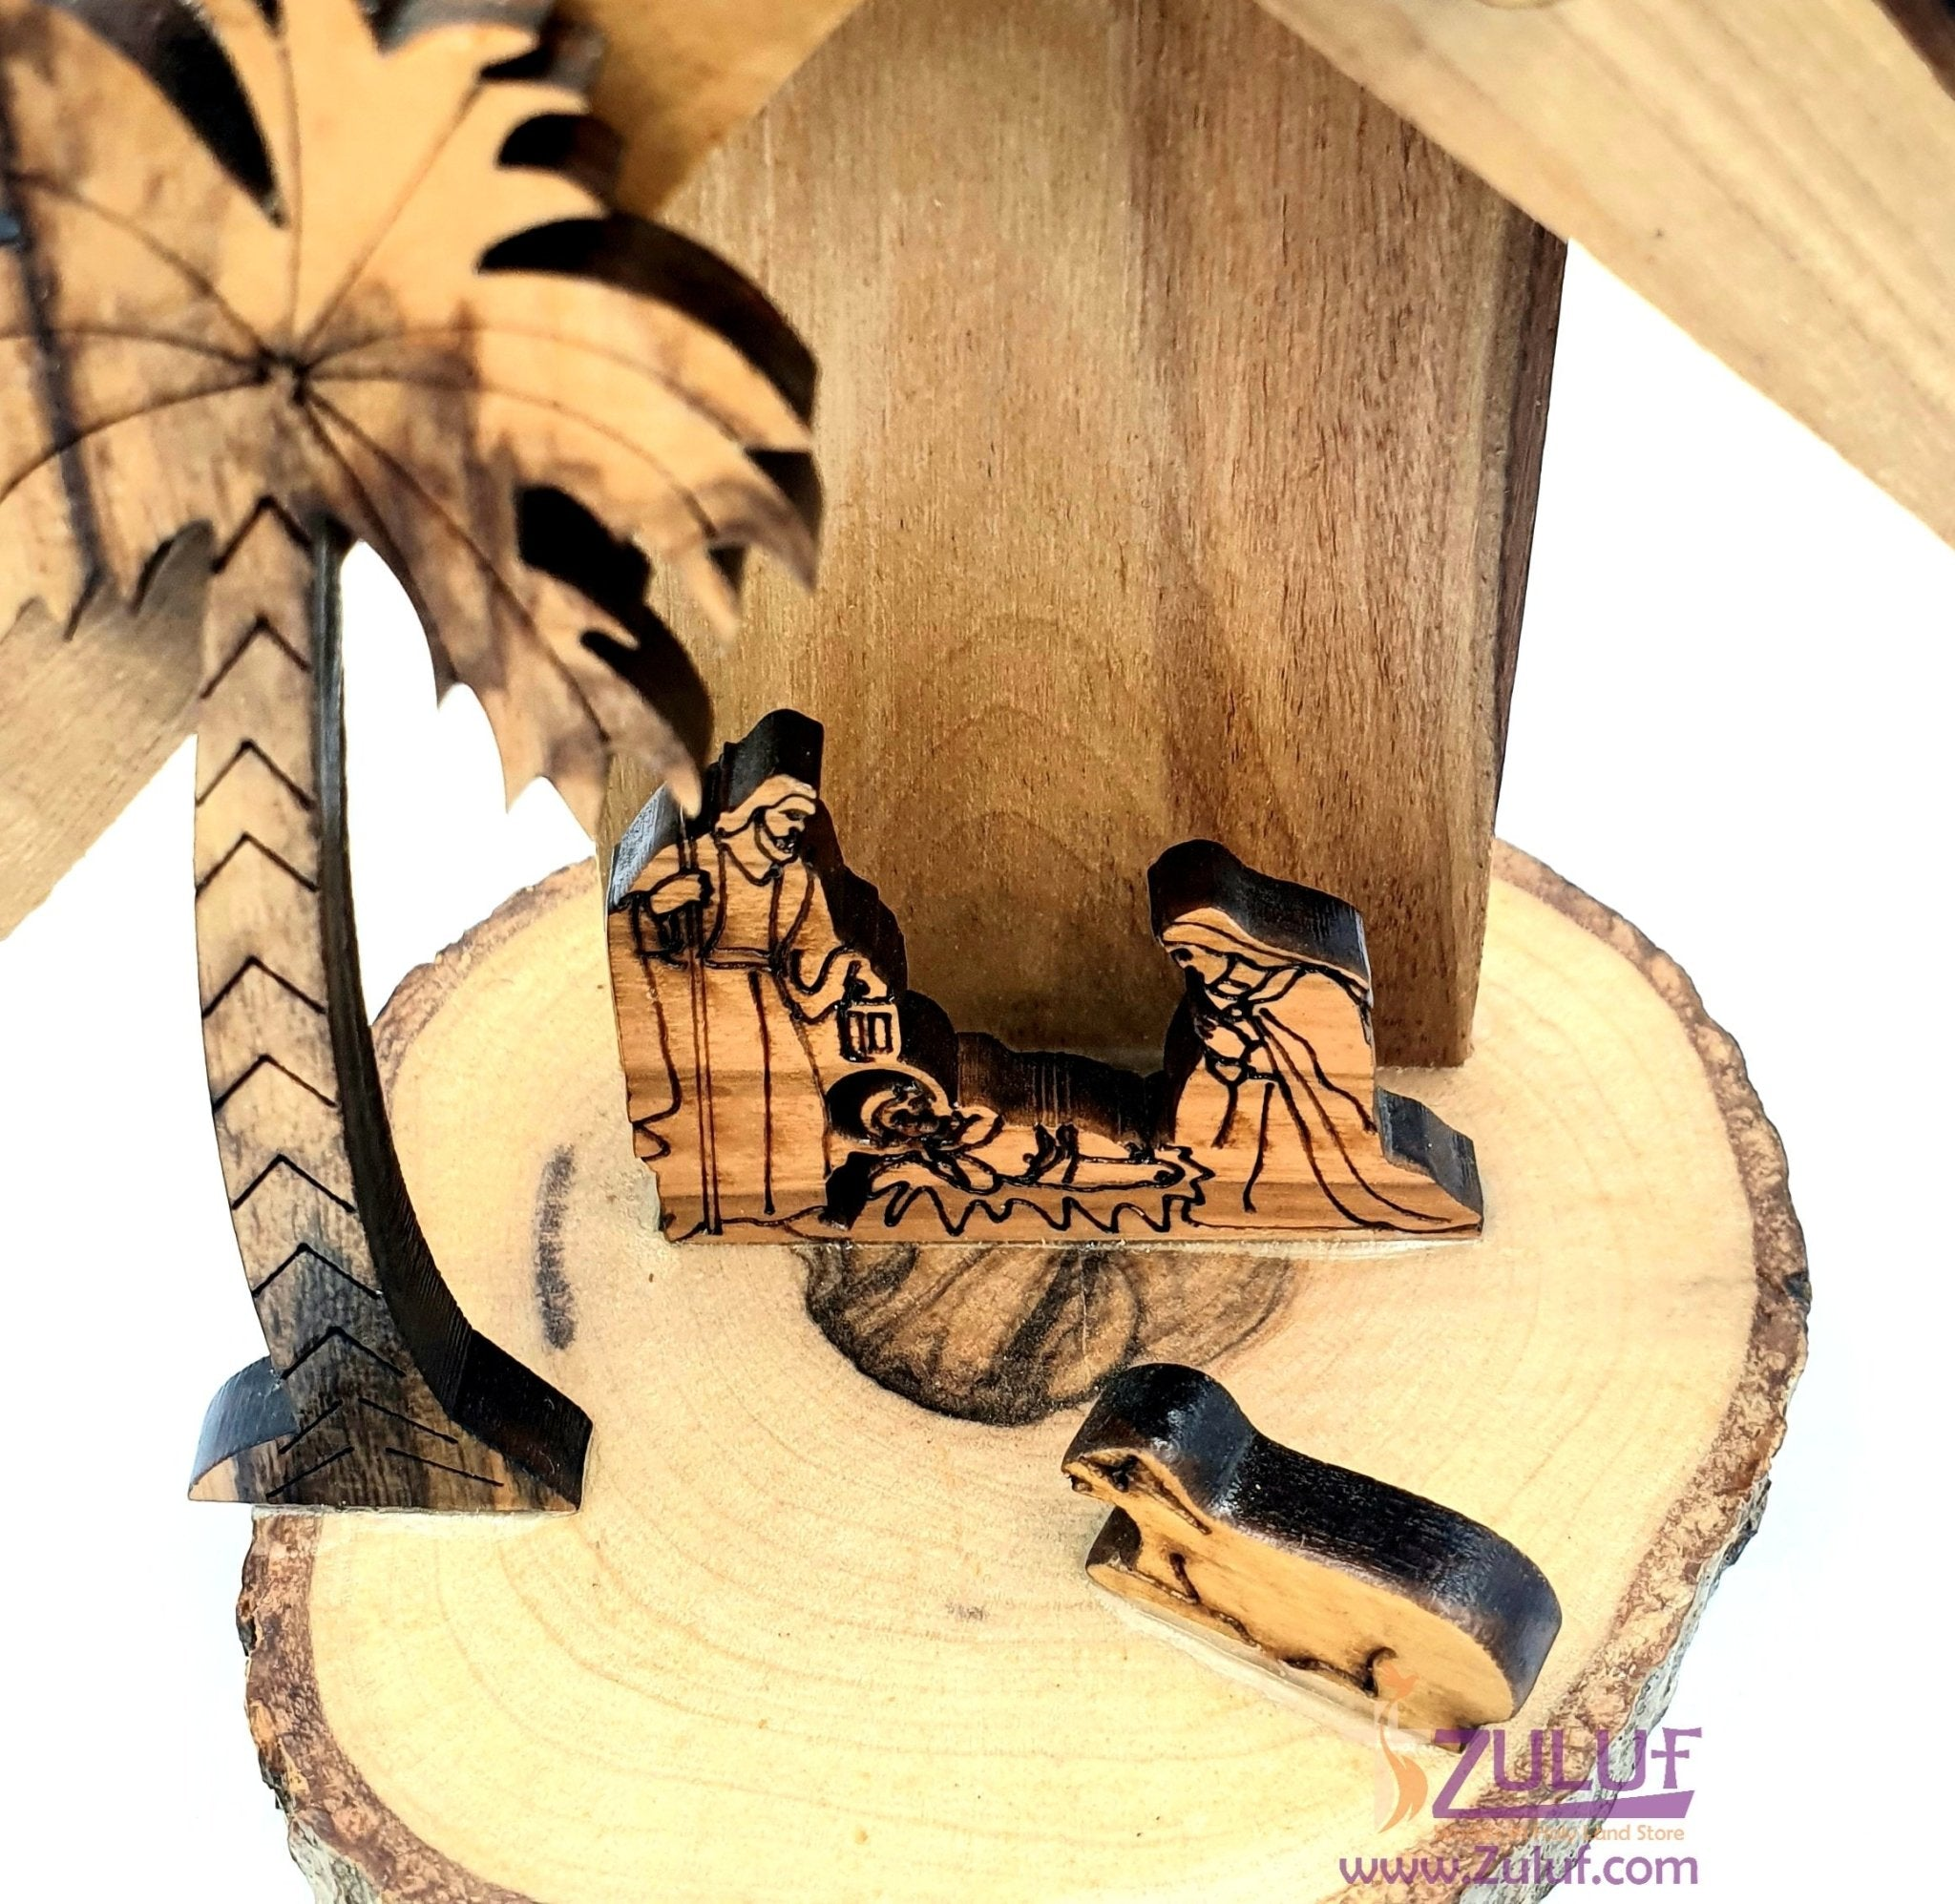 jerusalem decor holyland gifts Carved Nativity Olive wood NAT071 - Zuluf